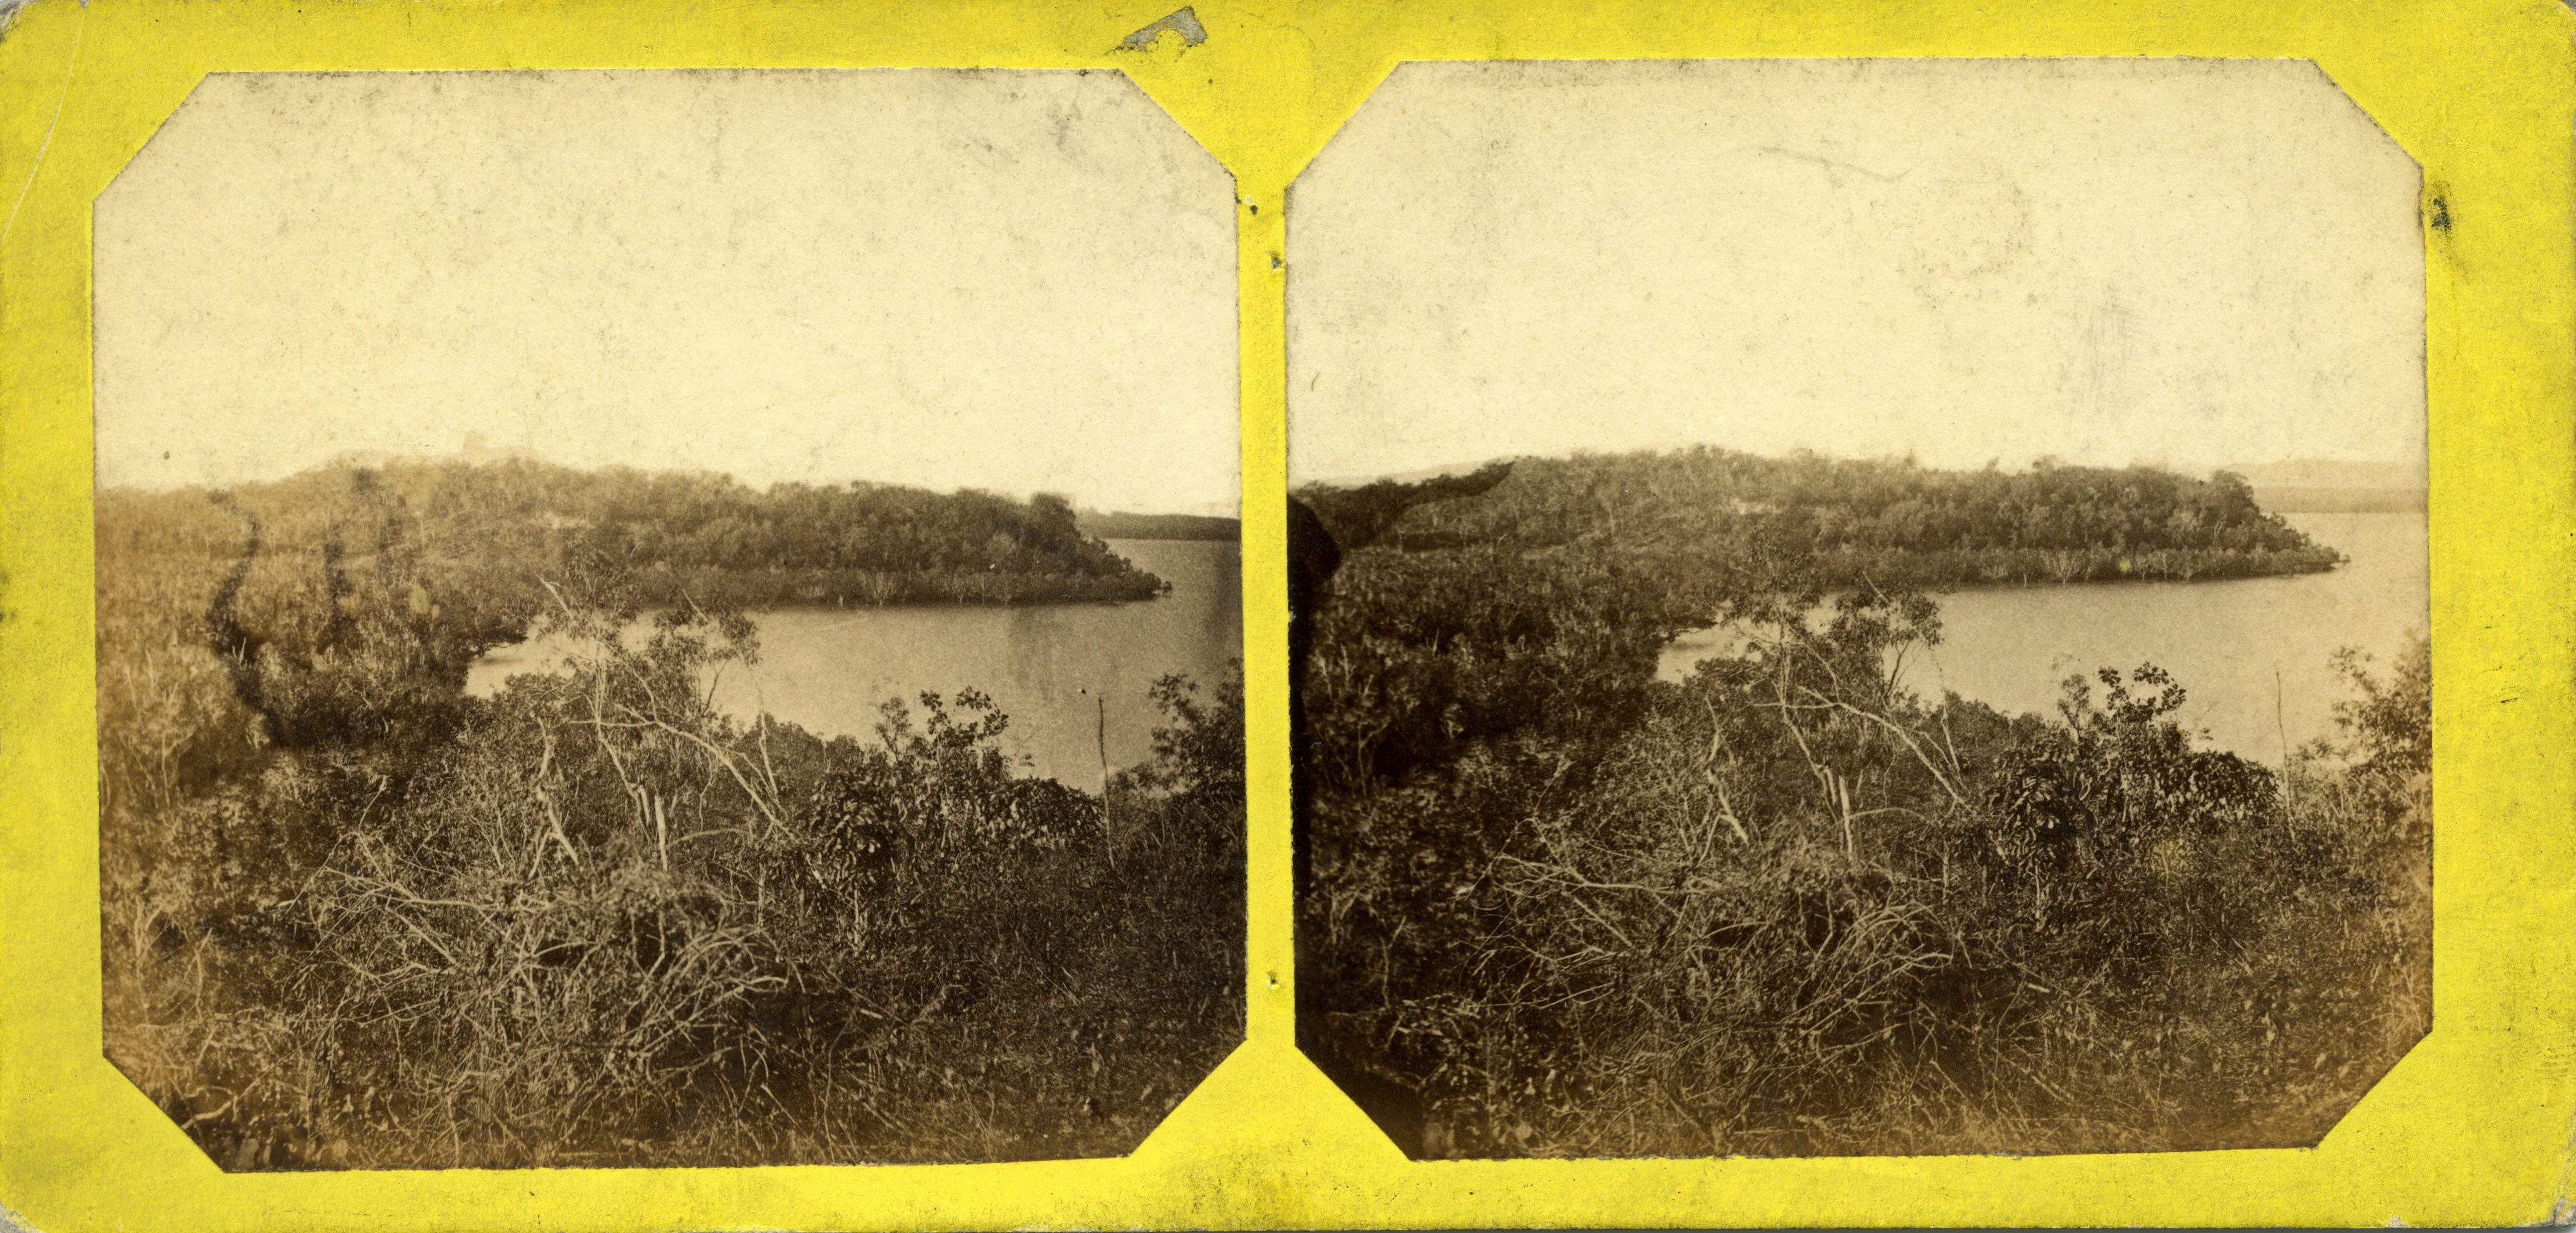 Stereoscopic image of Frances Bay, Port Darwin, 1868